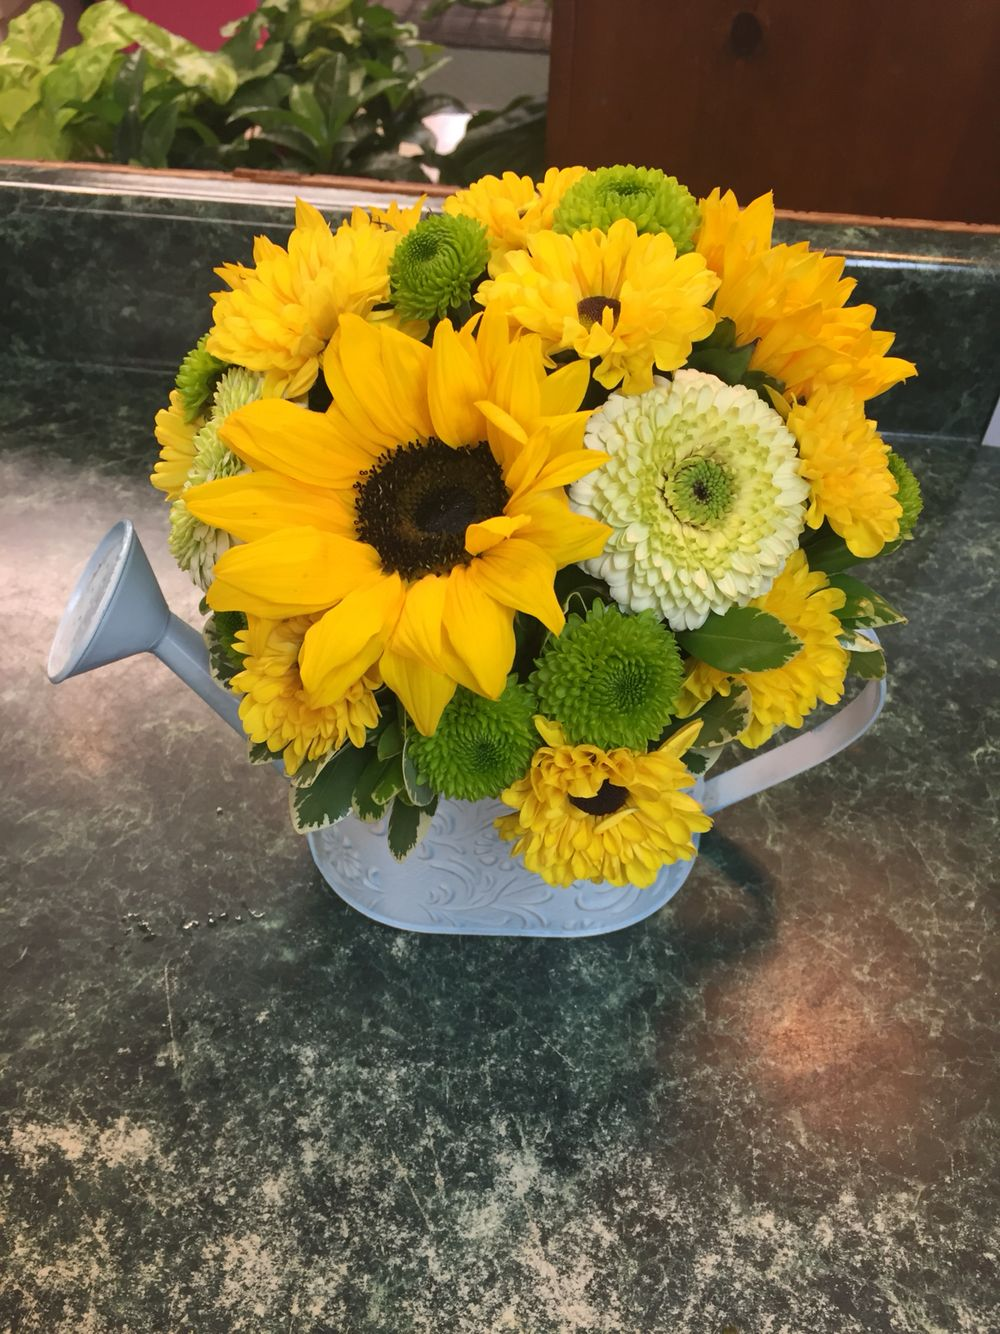 Pin by brittany clements on my floral designs pinterest floral daisy flower arrangements floral designs flower arrangement margarita flower bellis perennis floral arrangements daisies izmirmasajfo